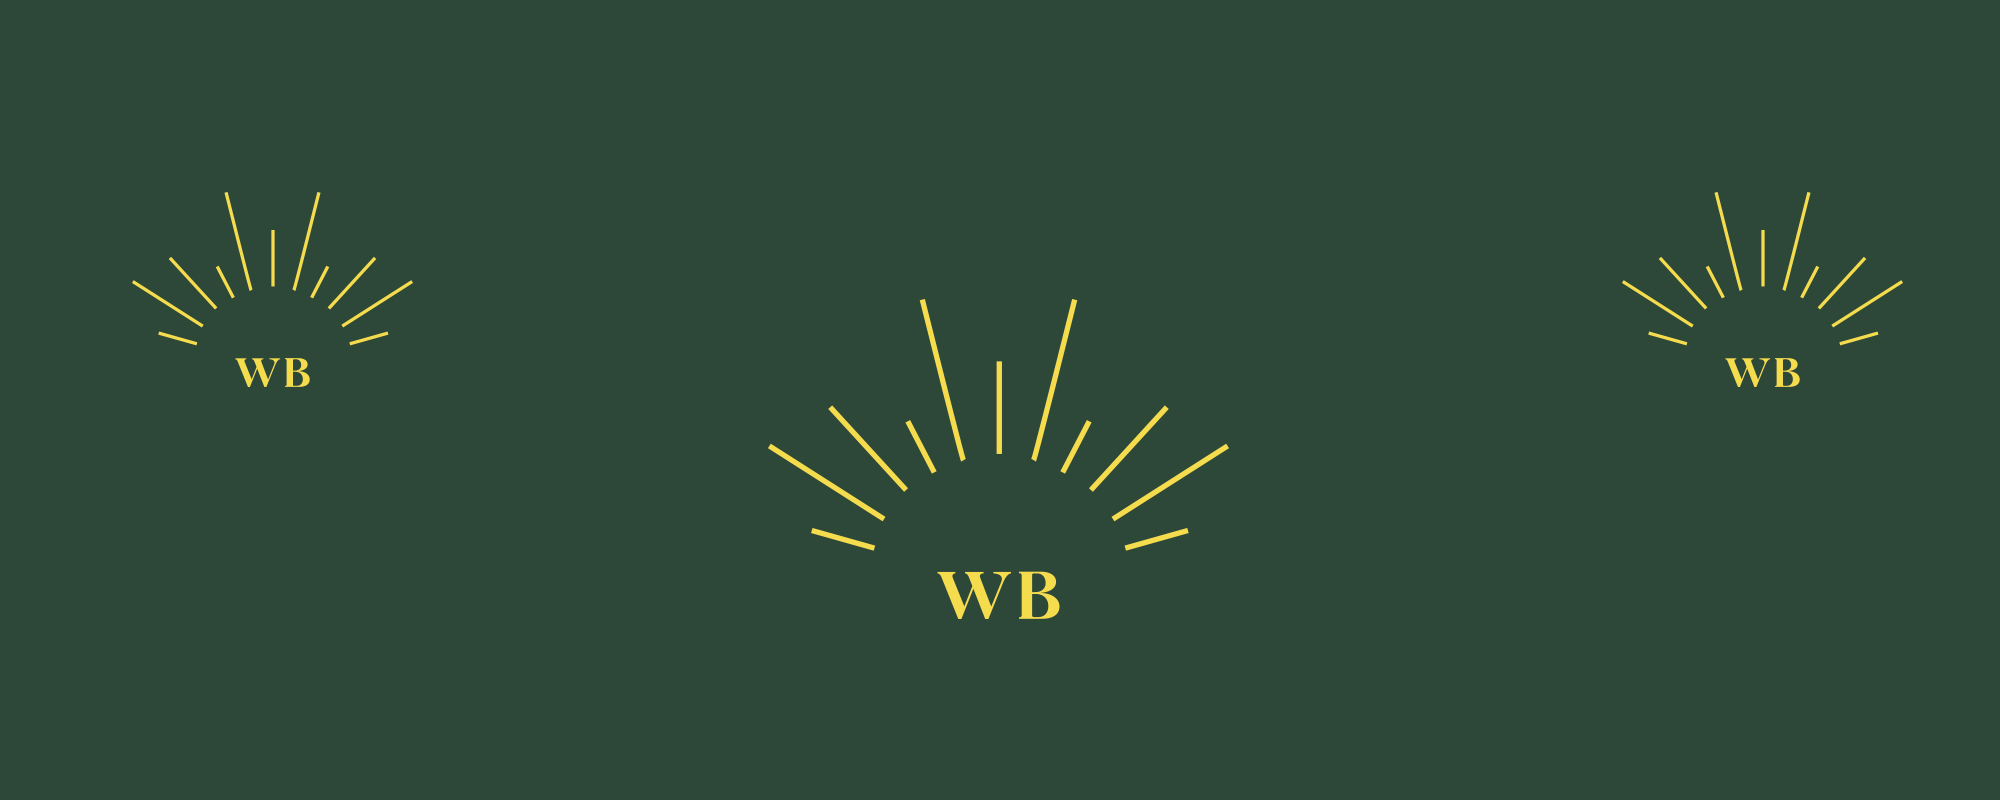 writebright co icon WB with line detail